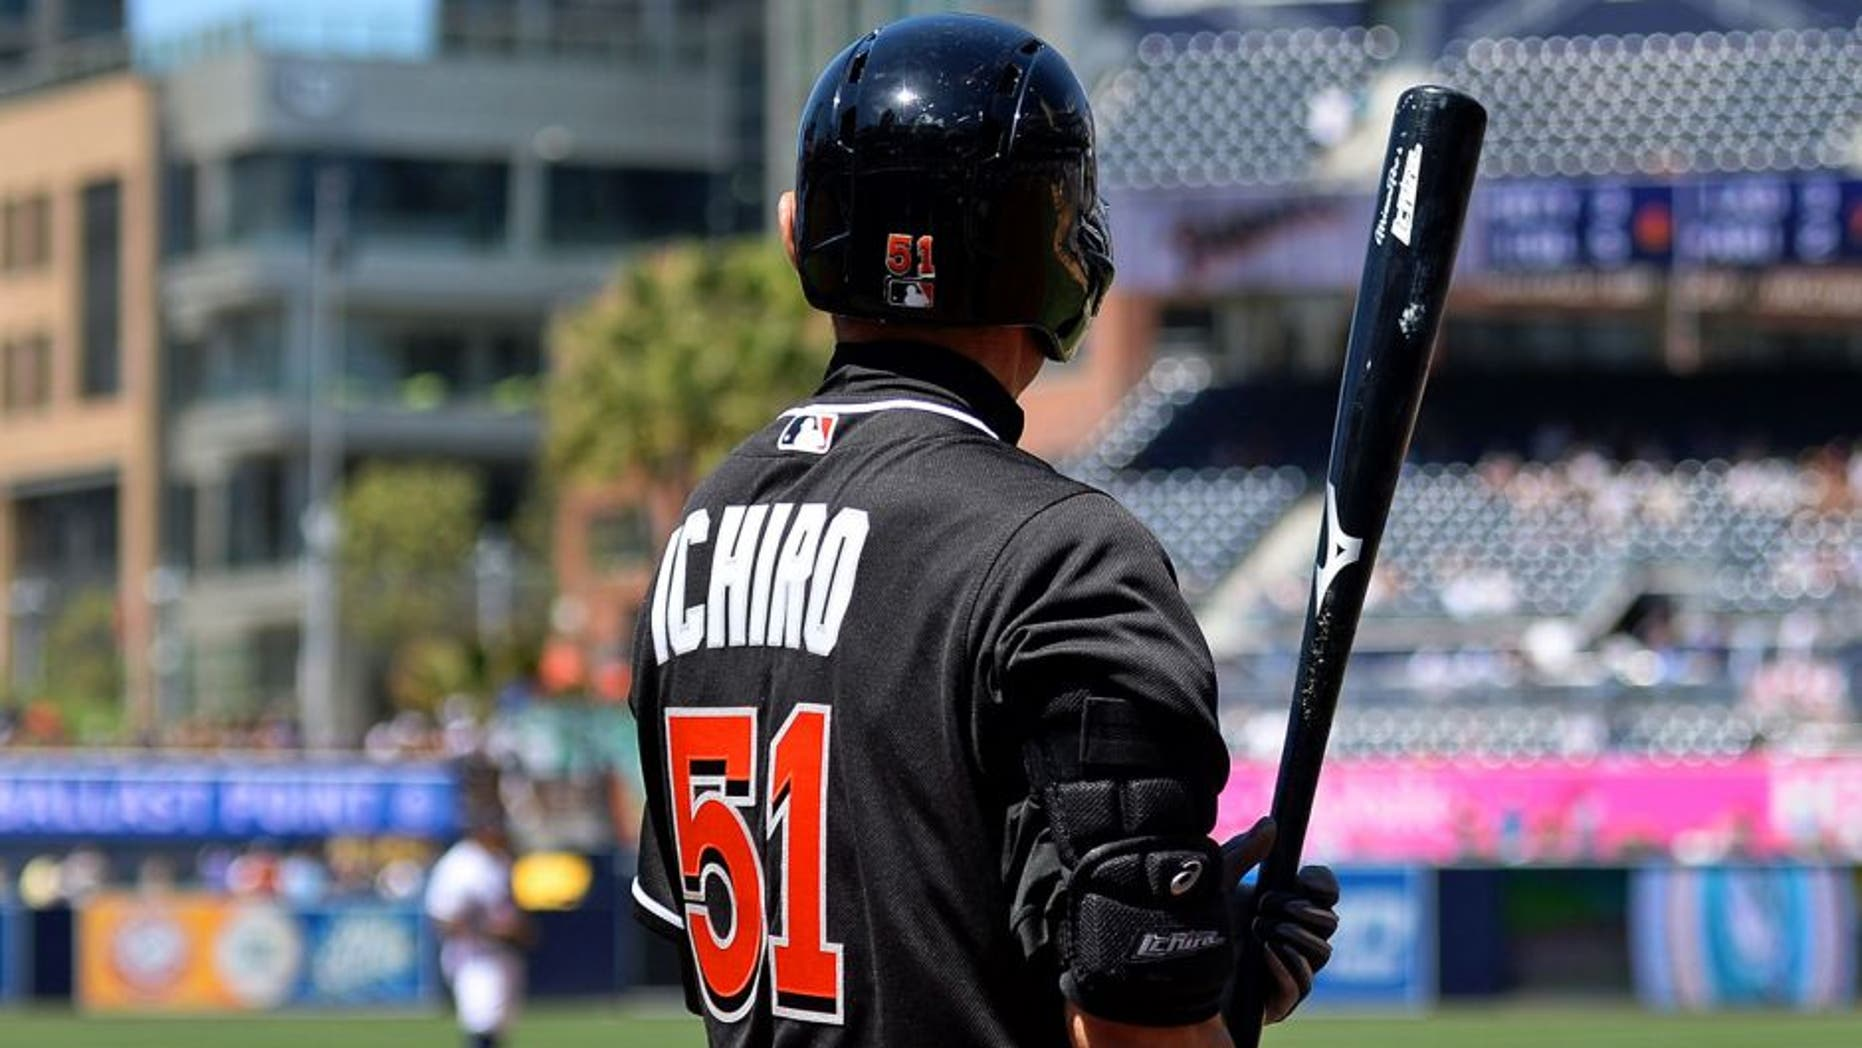 Jun 15, 2016; San Diego, CA, USA; Miami Marlins center fielder Ichiro Suzuki (51) on deck during the seventh inning against the San Diego Padres at Petco Park. Mandatory Credit: Jake Roth-USA TODAY Sports